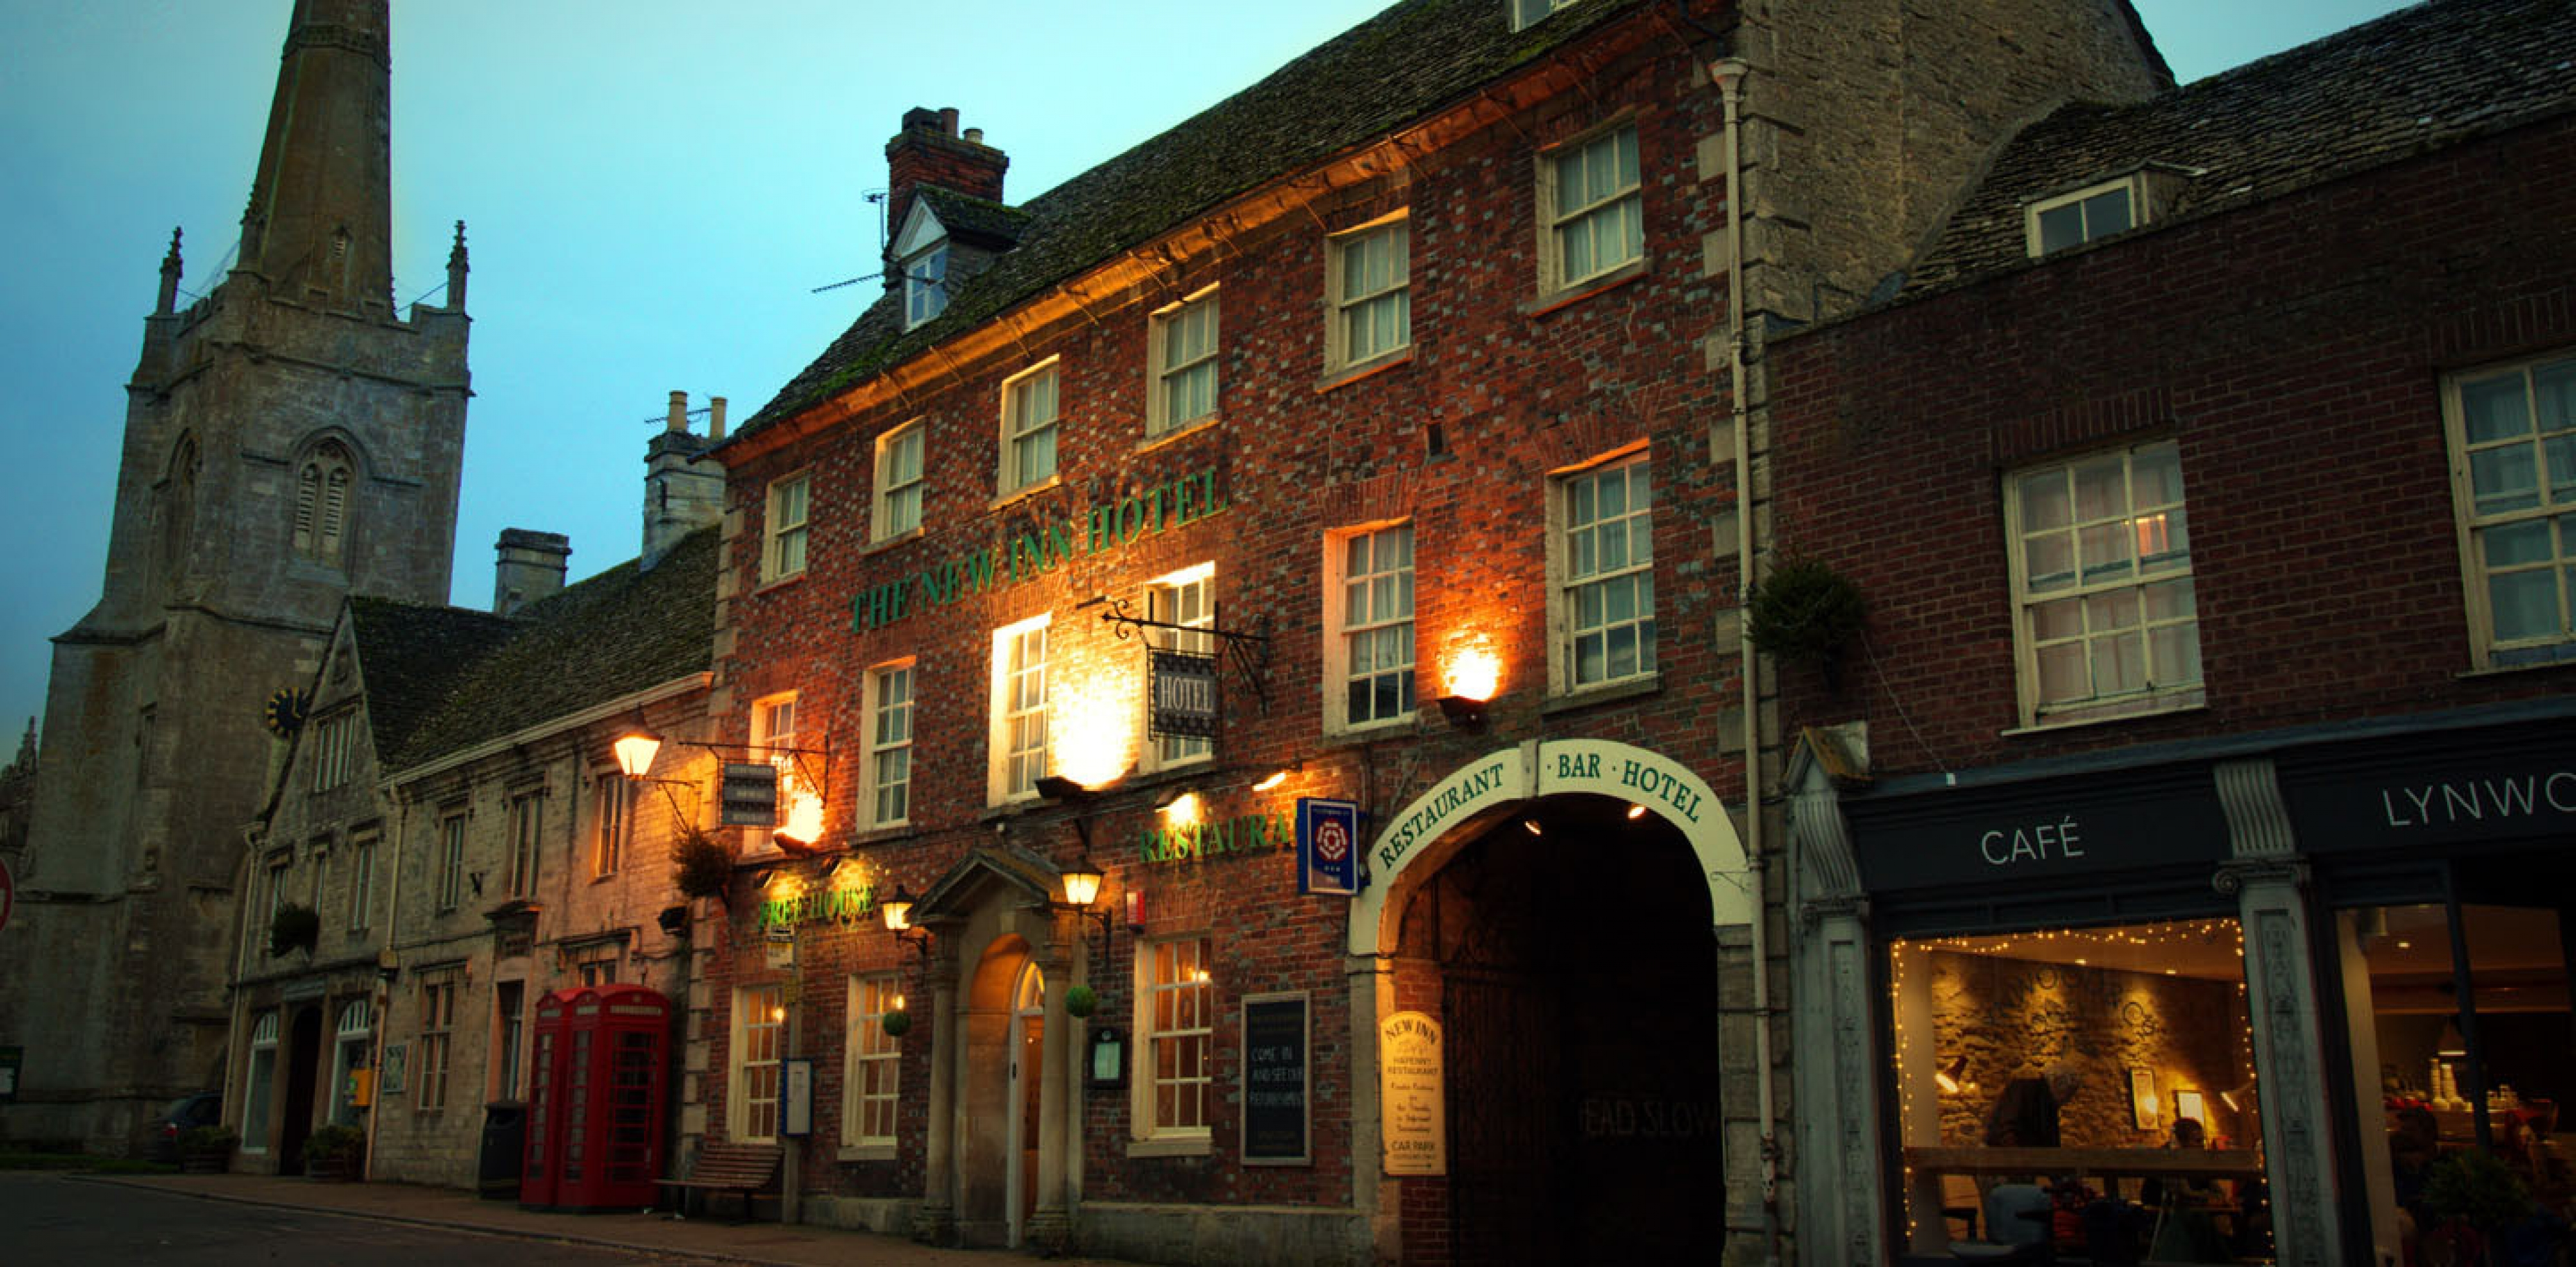 Welcome to The New Inn Hotel